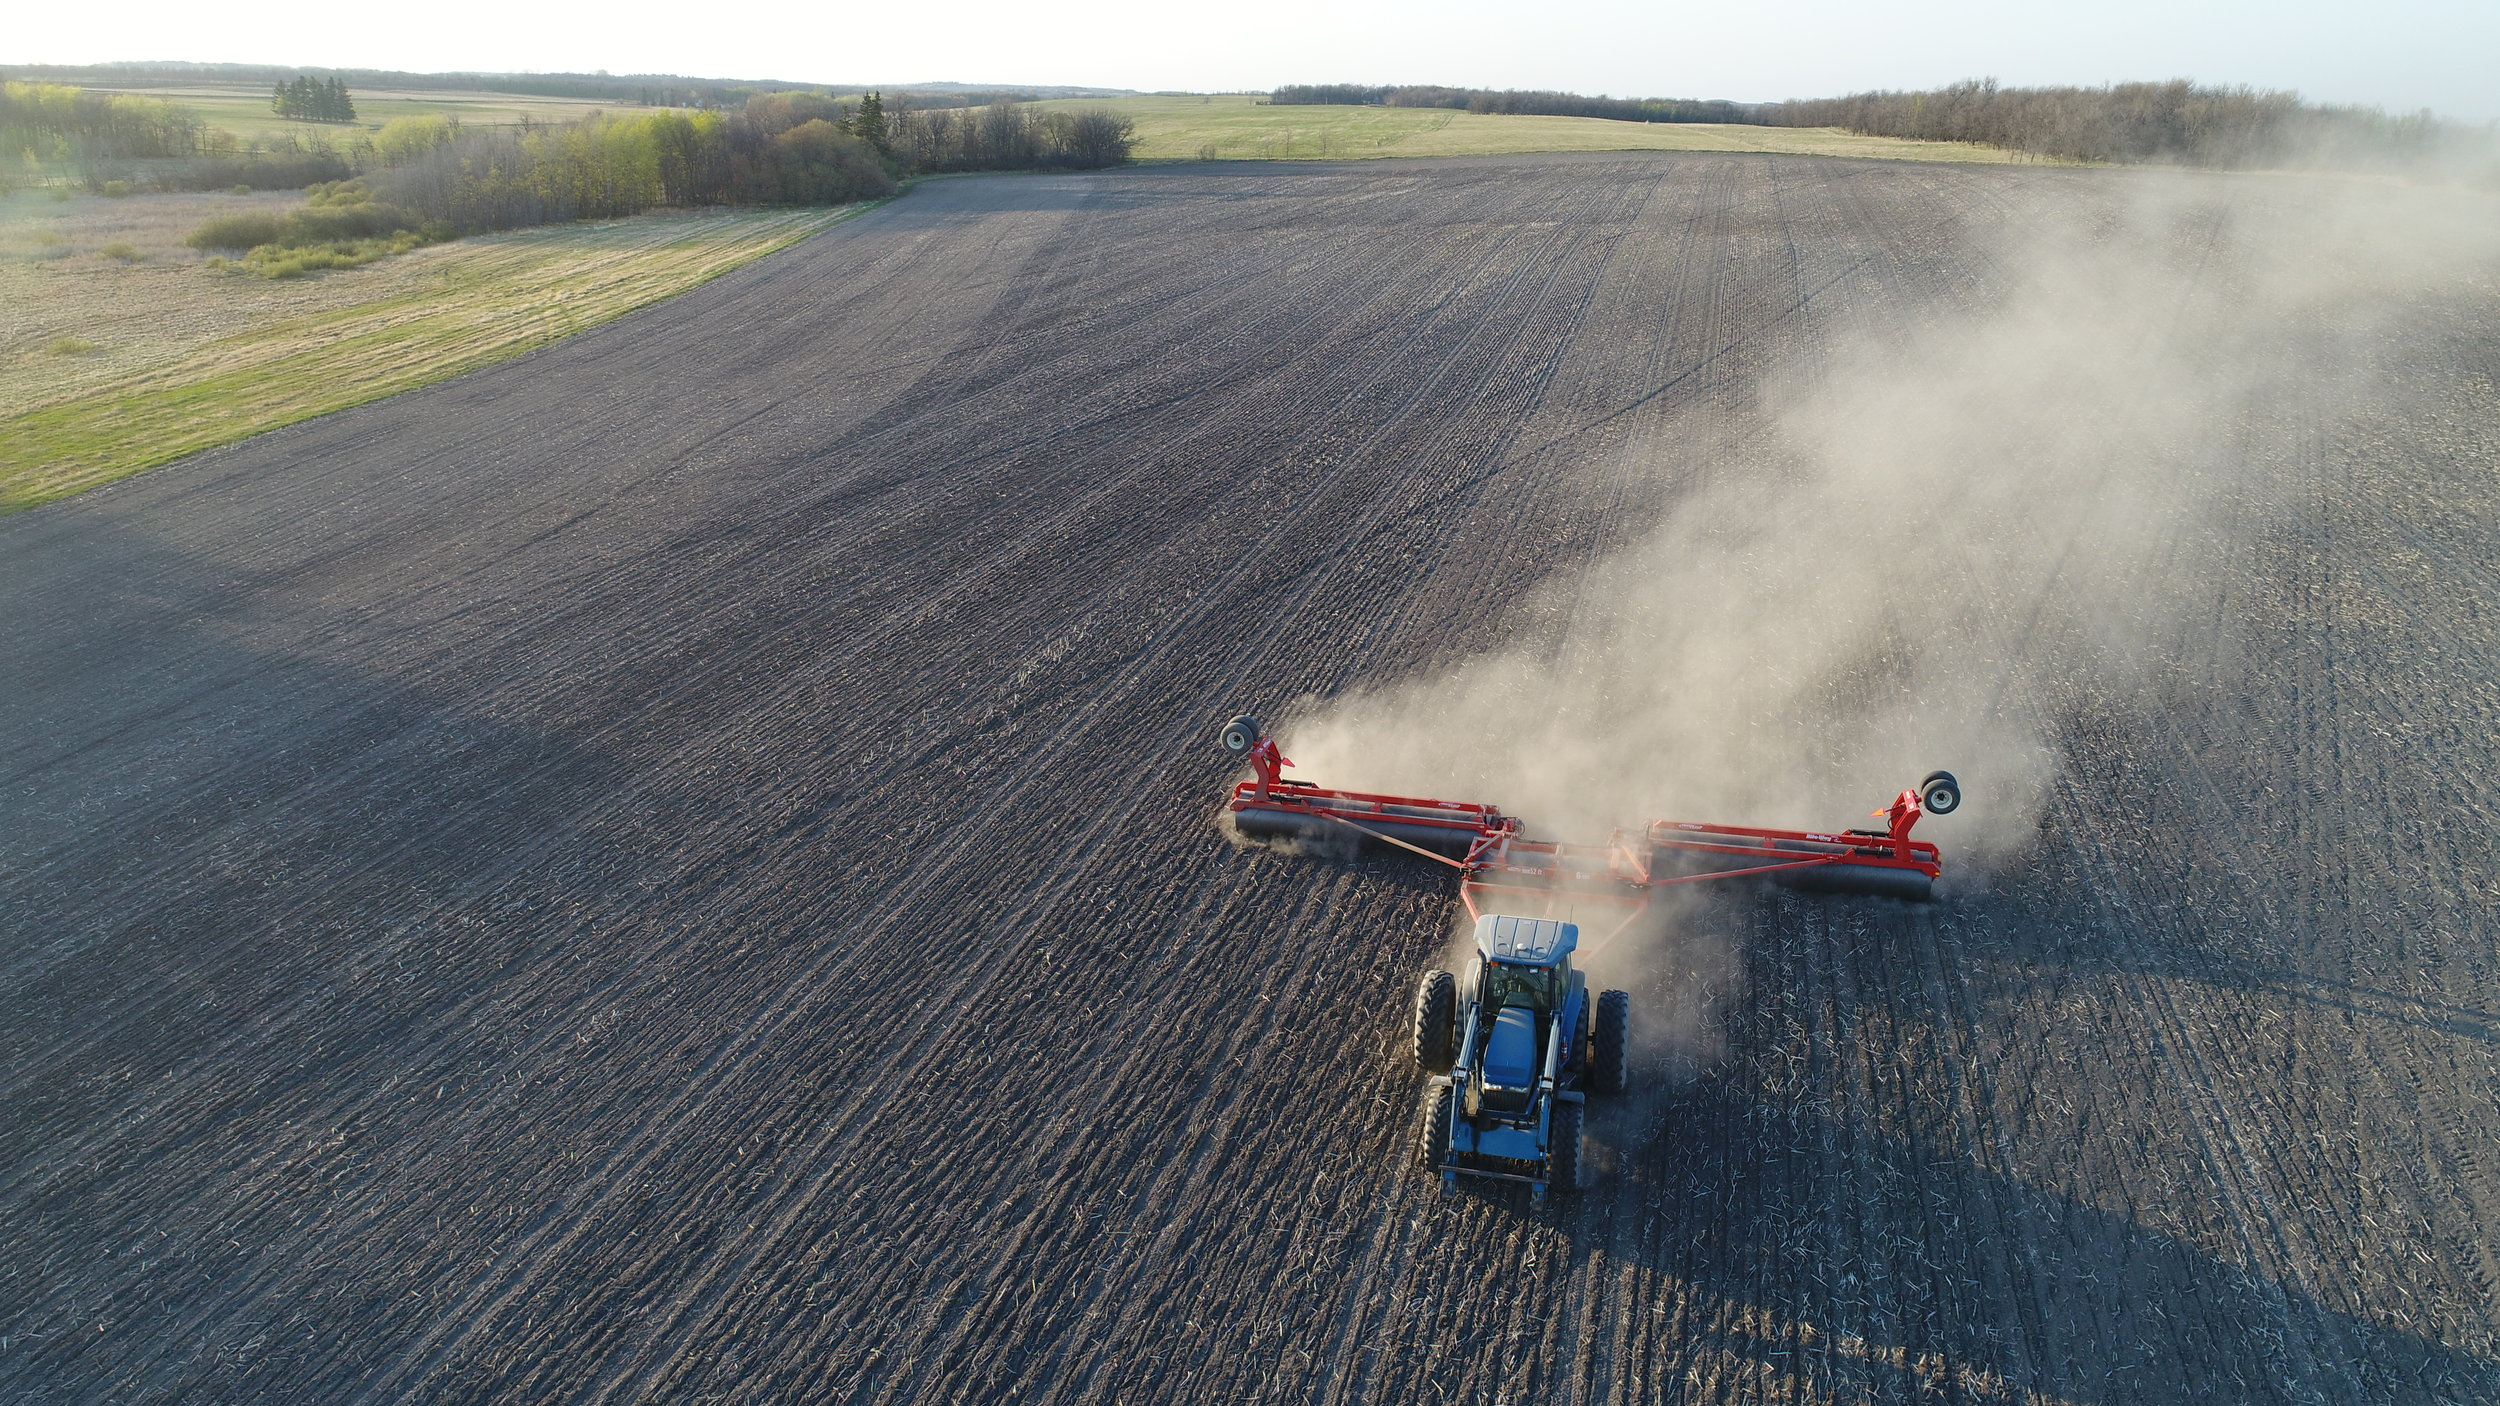 Rolling the soybean field